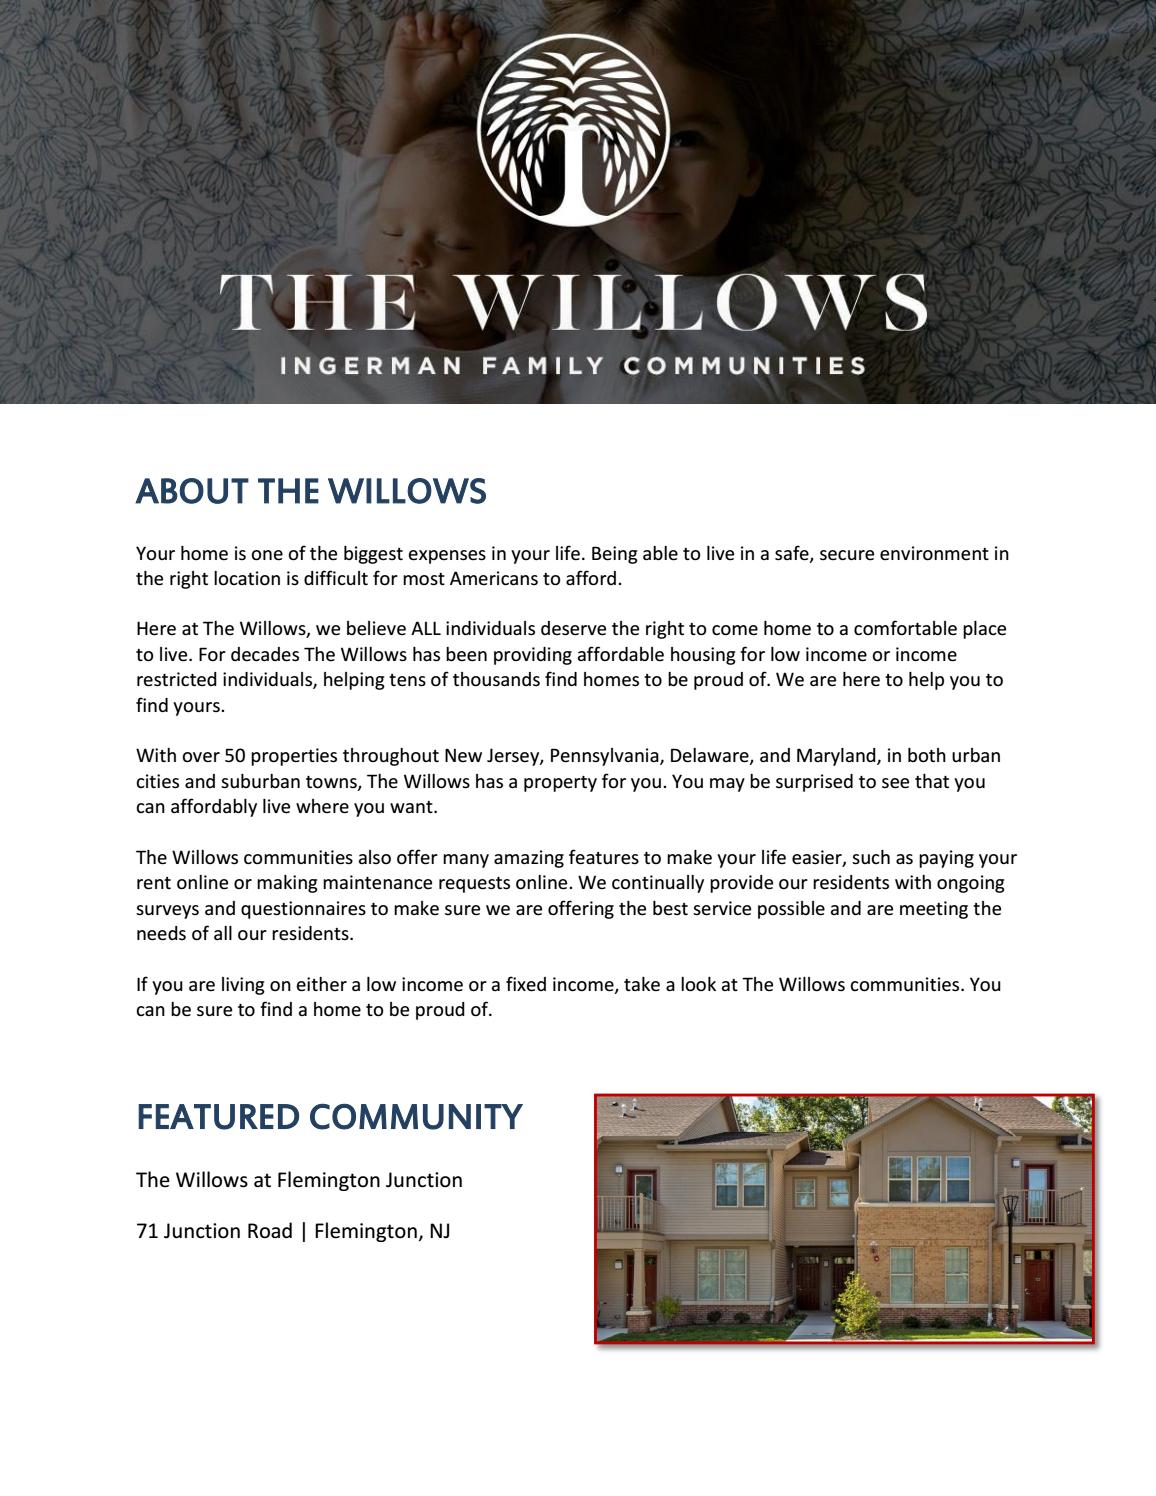 The Willows - Offers Affordable Housing by thewillows - issuu